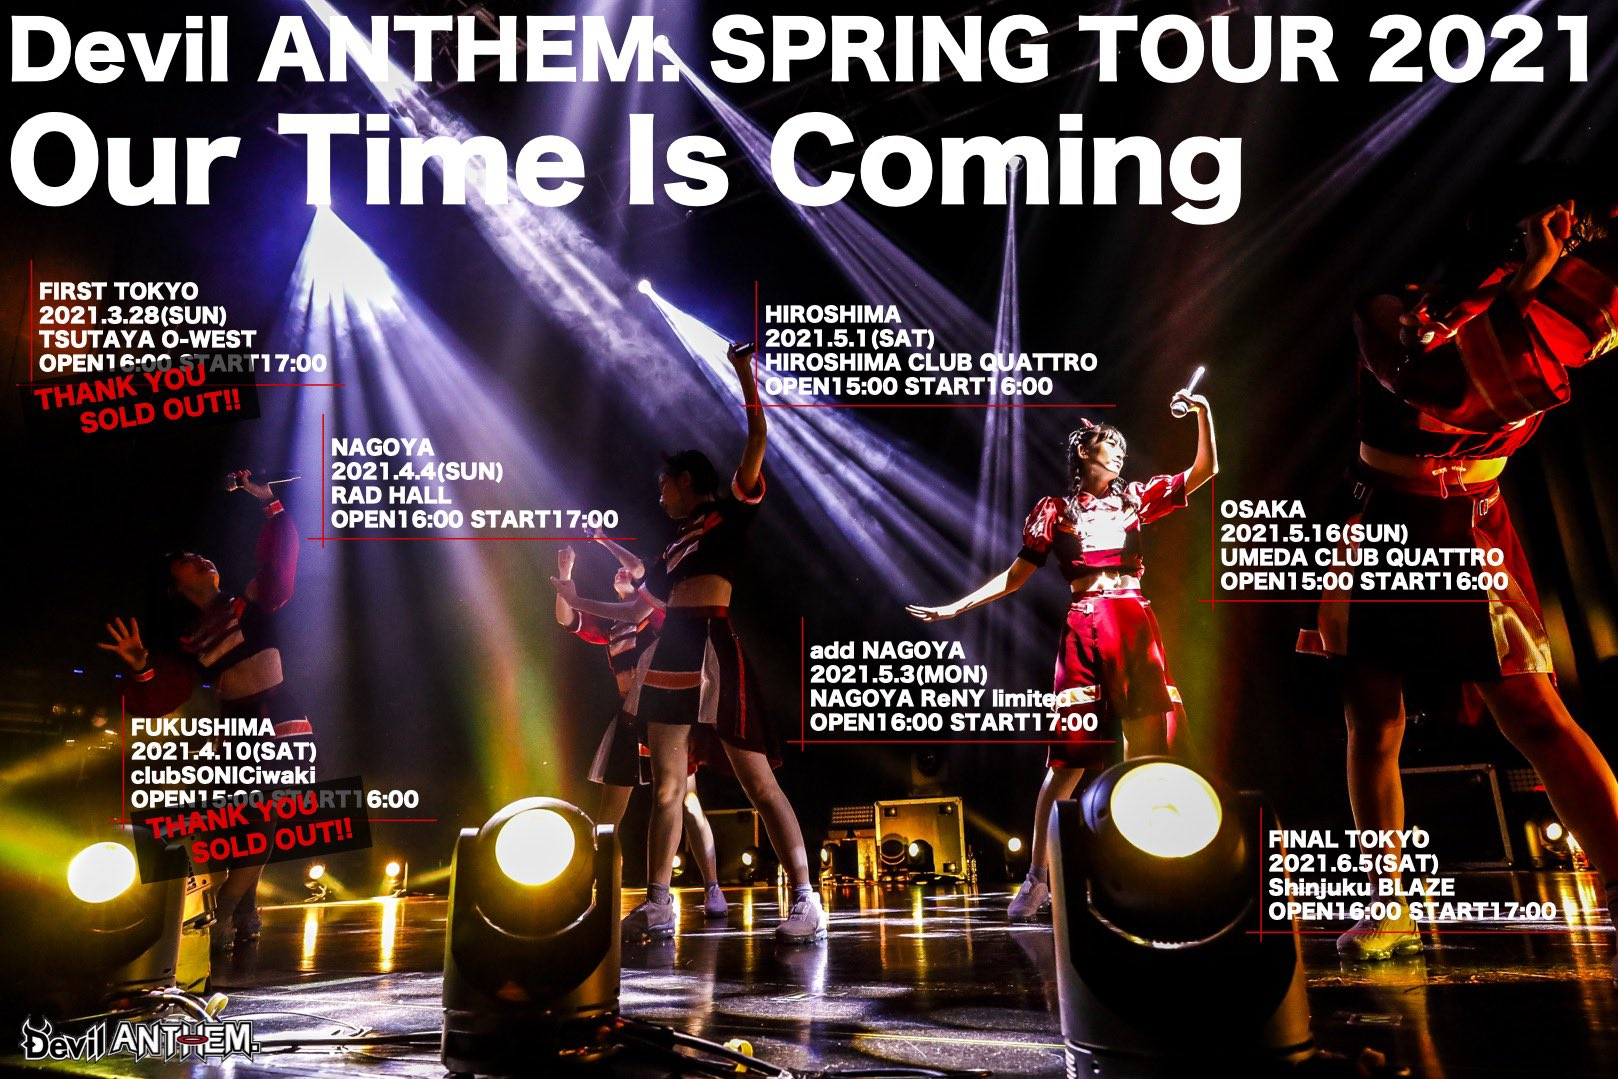 Devil ANTHEM.SPRING TOUR 2021 Our Time Is Coming